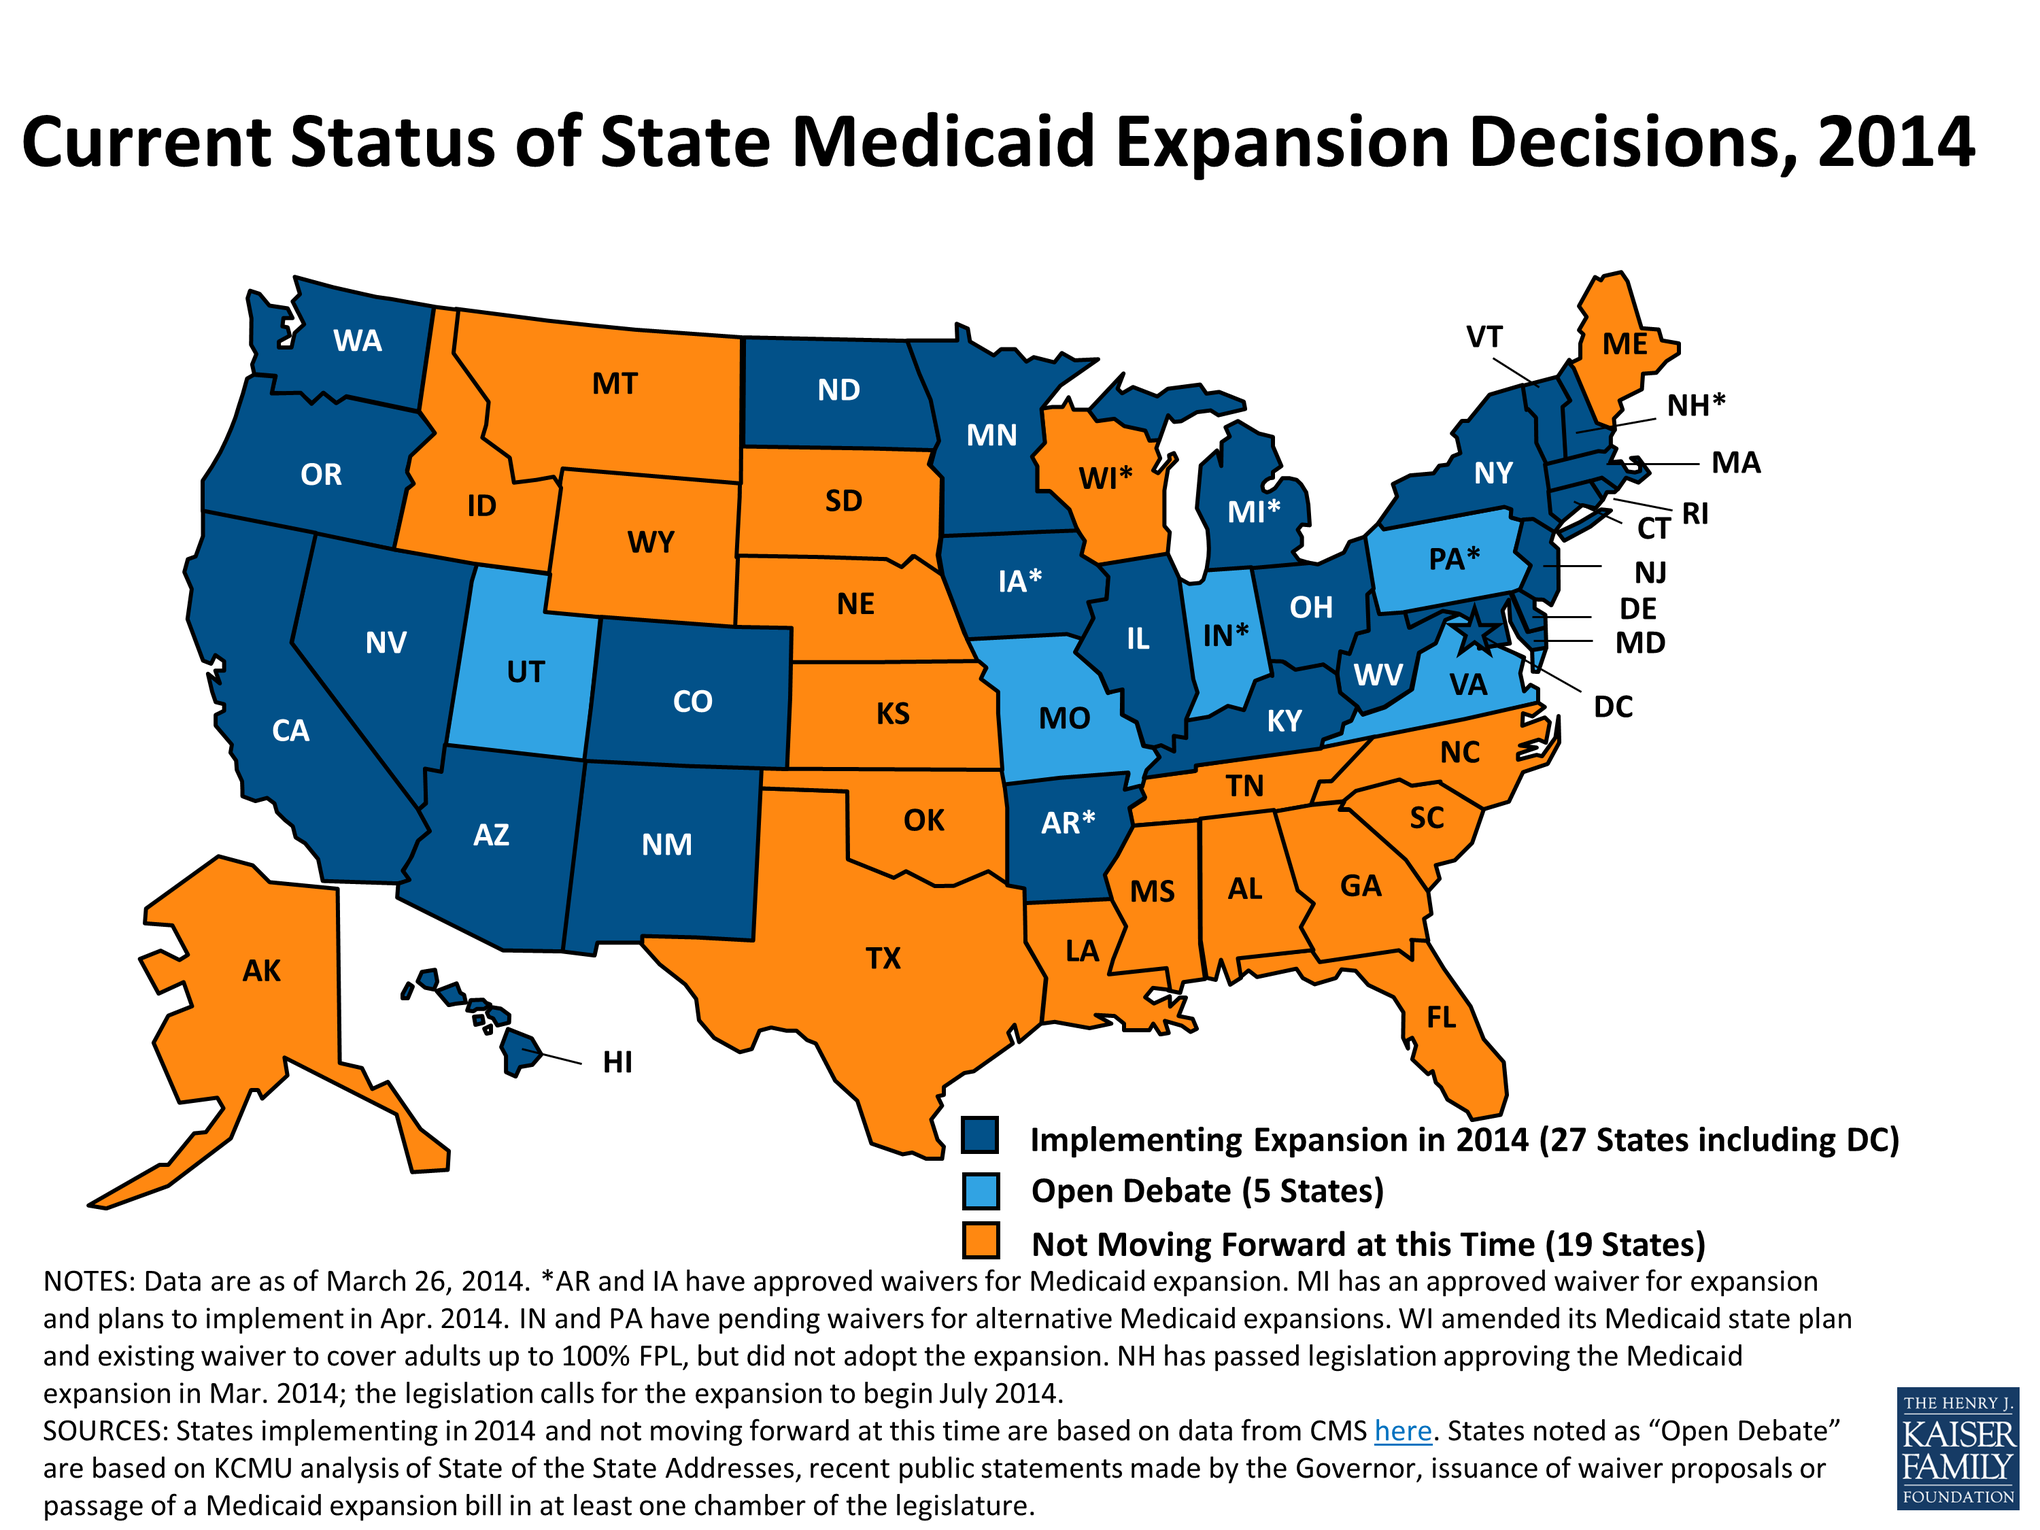 What happens to poor people in non-Medicaid expansion states?